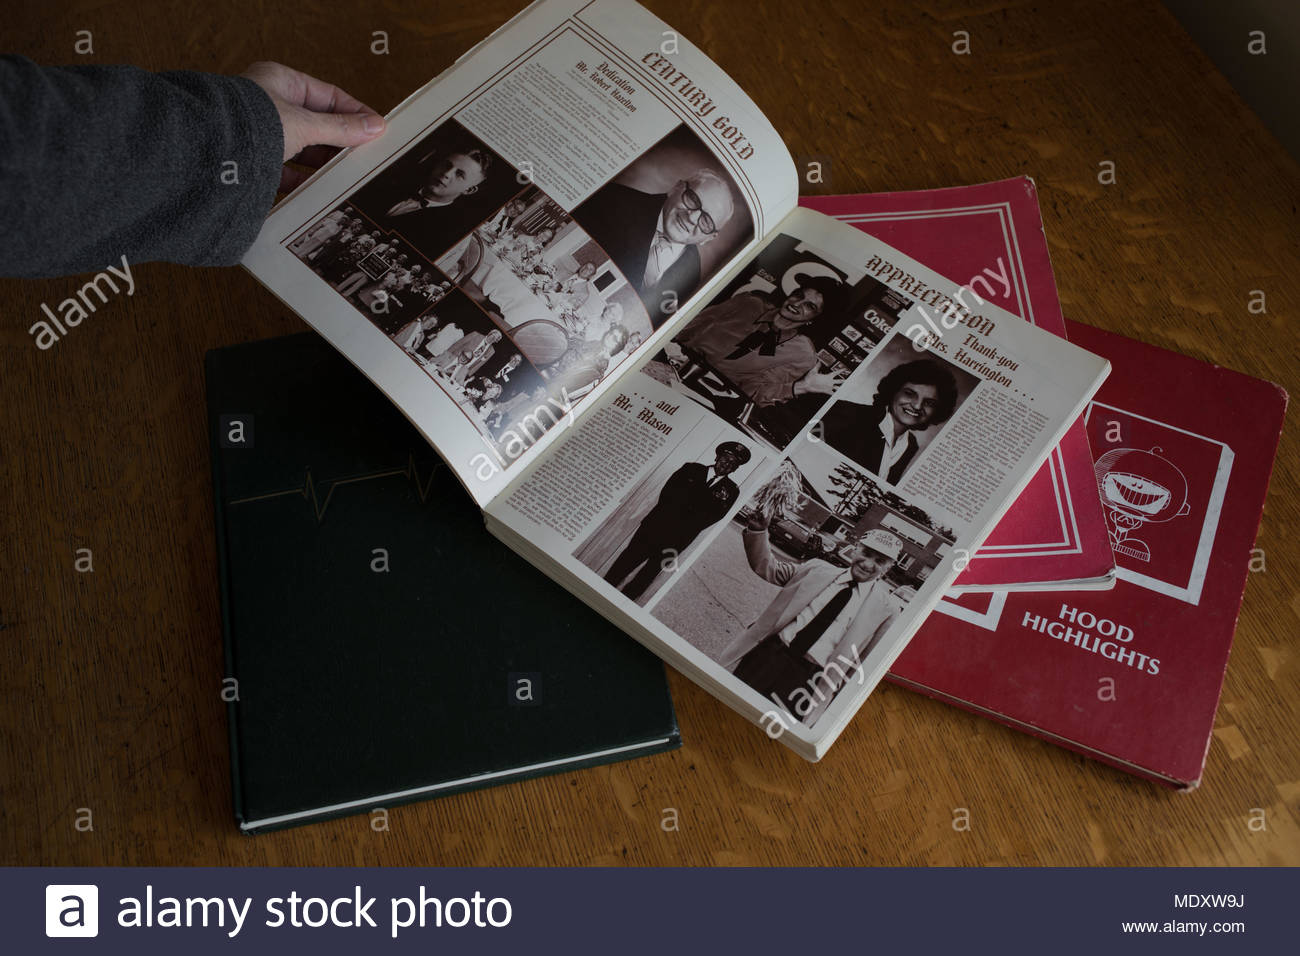 Yearbooks from the 1990's in New England, USA. Stock Photo